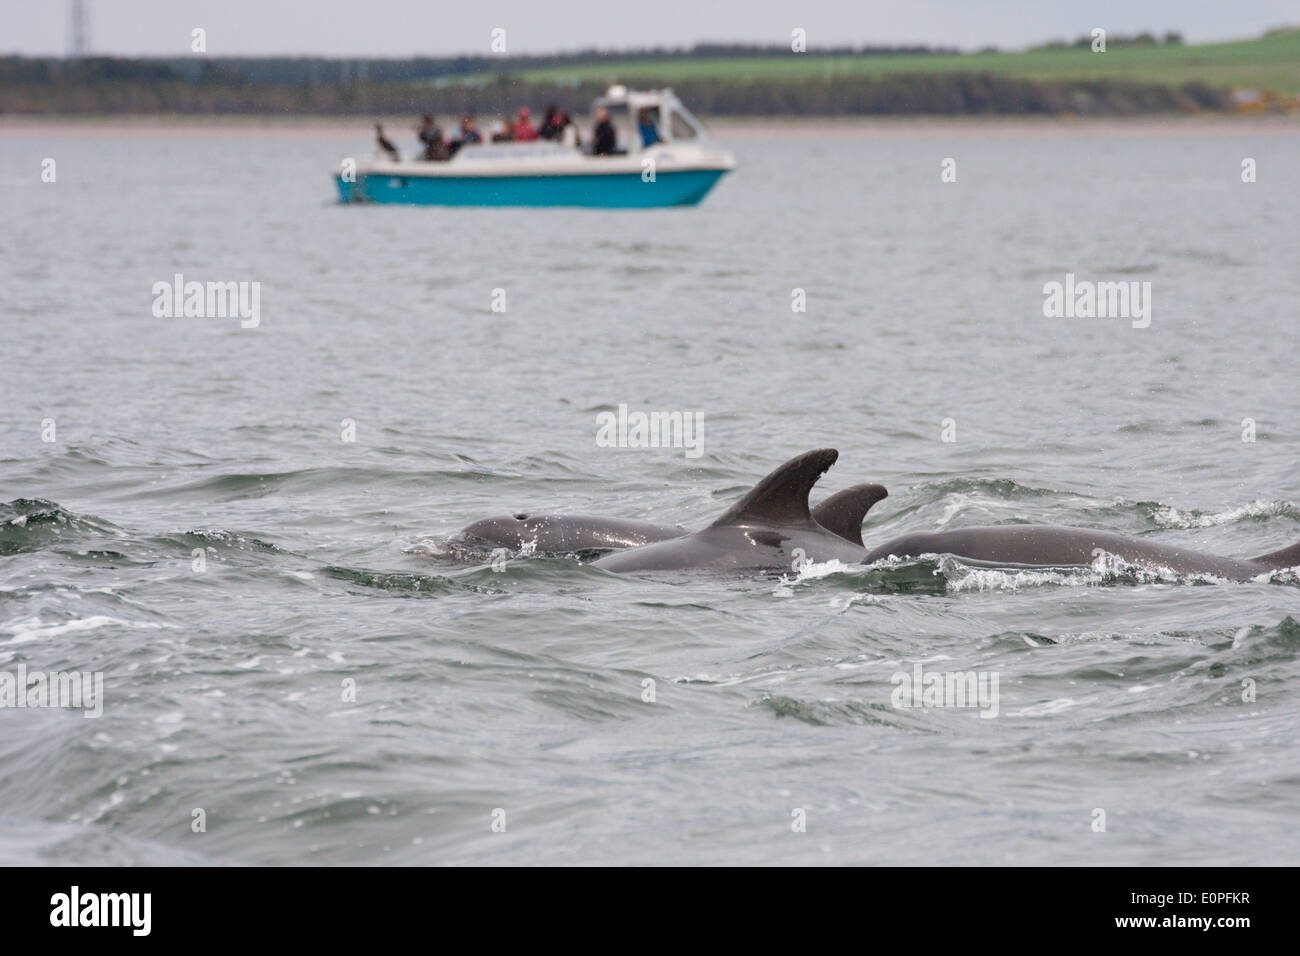 Bottlenose dolphins (tursiops truncatus) and a dolphin watching boat, Moray Firth, Scotland, UK - Stock Image